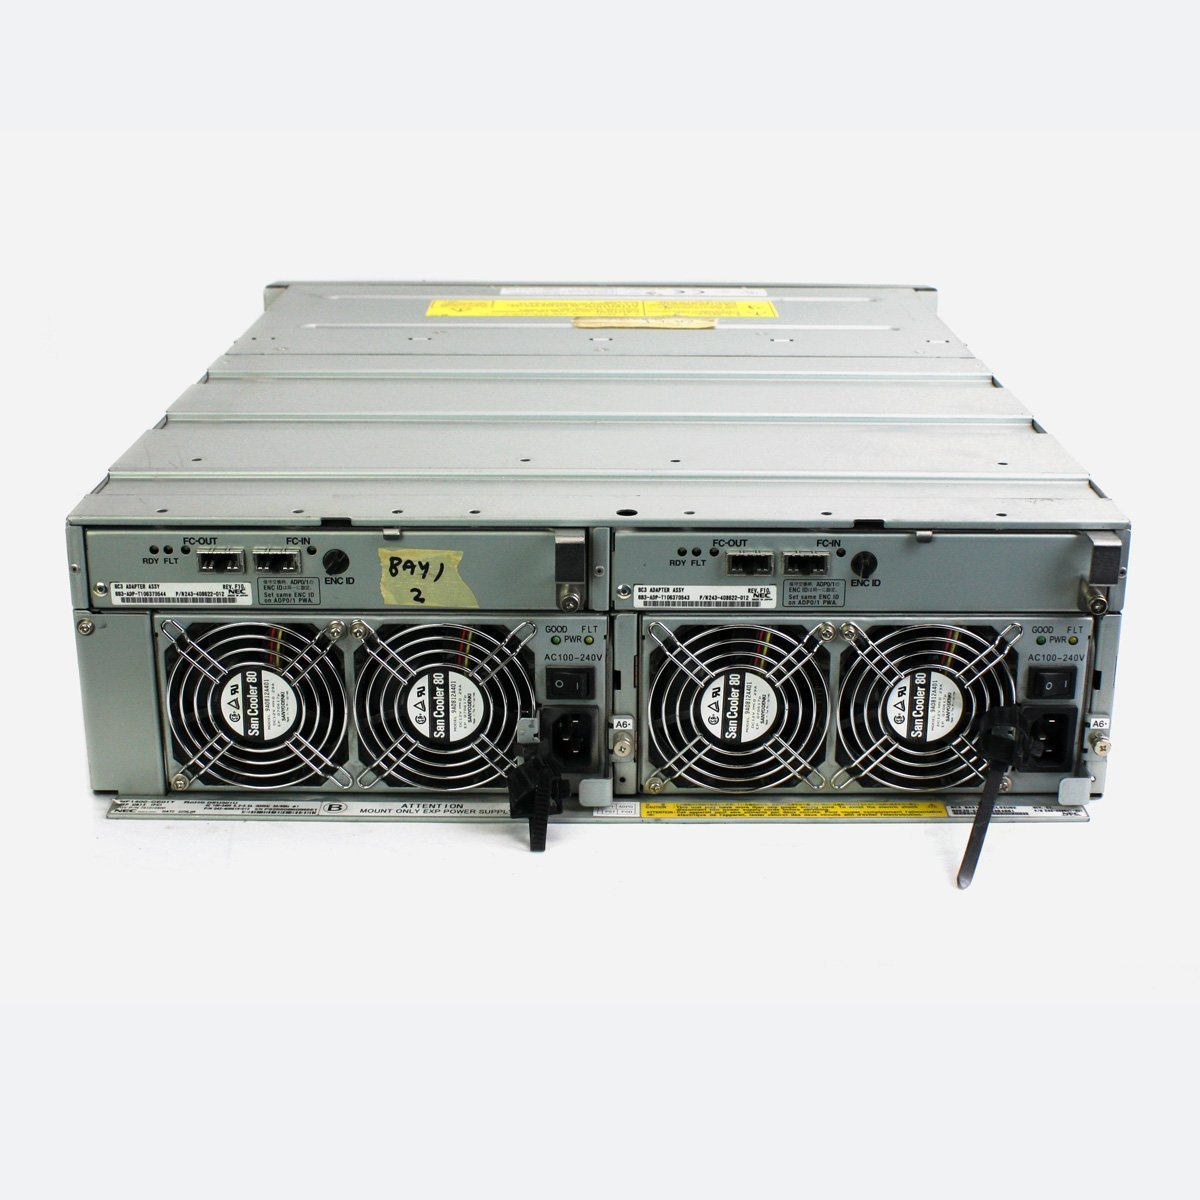 Used Grass Valley K2 10G Raid Storage System